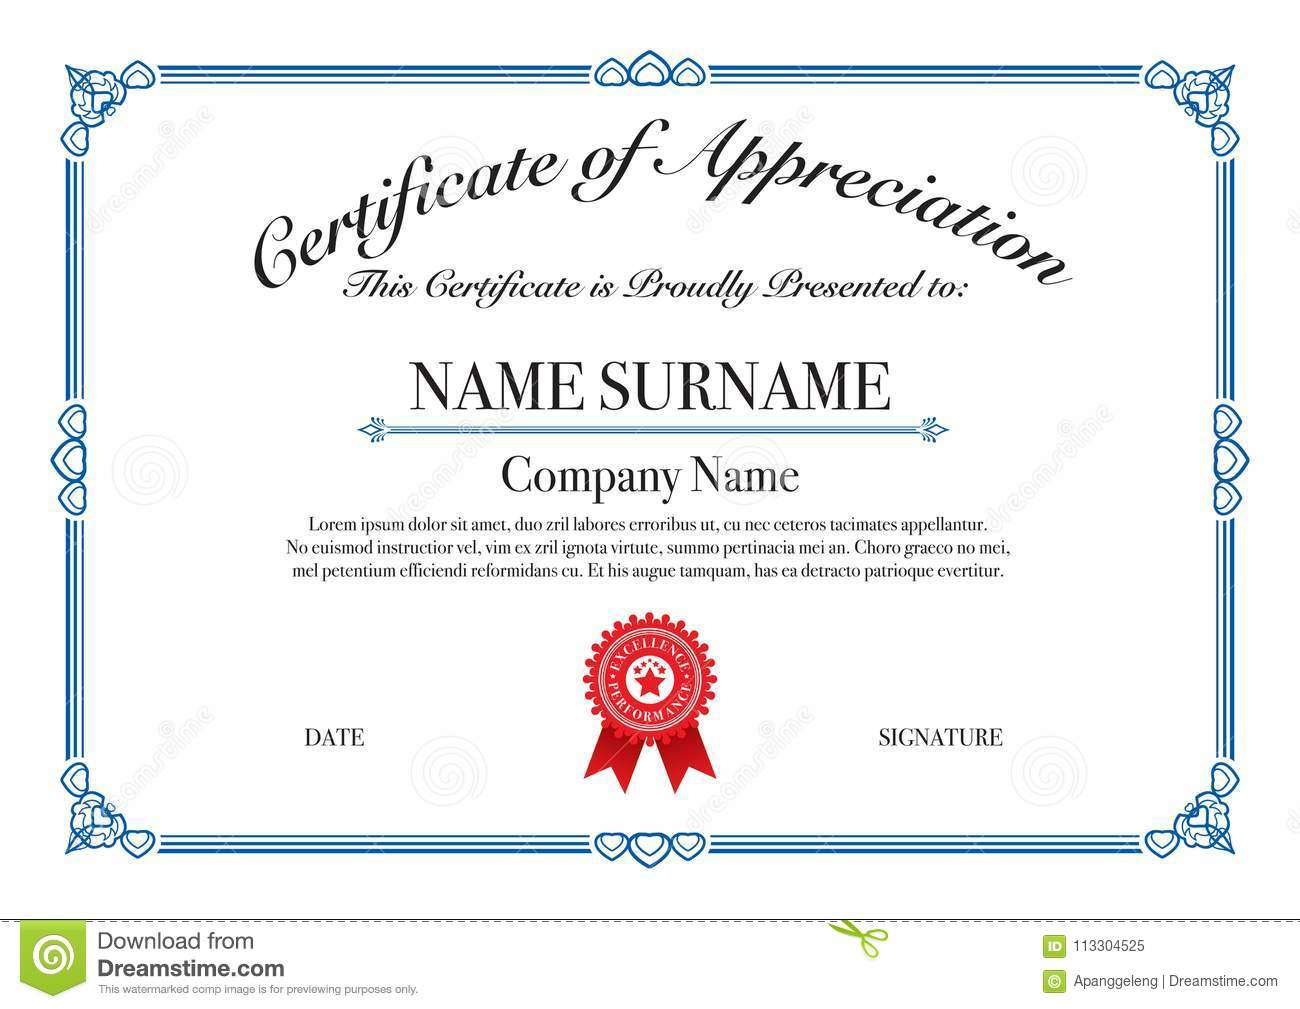 Blue border certificate of appreciation for excellence performance royalty free vector download blue border certificate of appreciation for excellence performance stock yelopaper Image collections